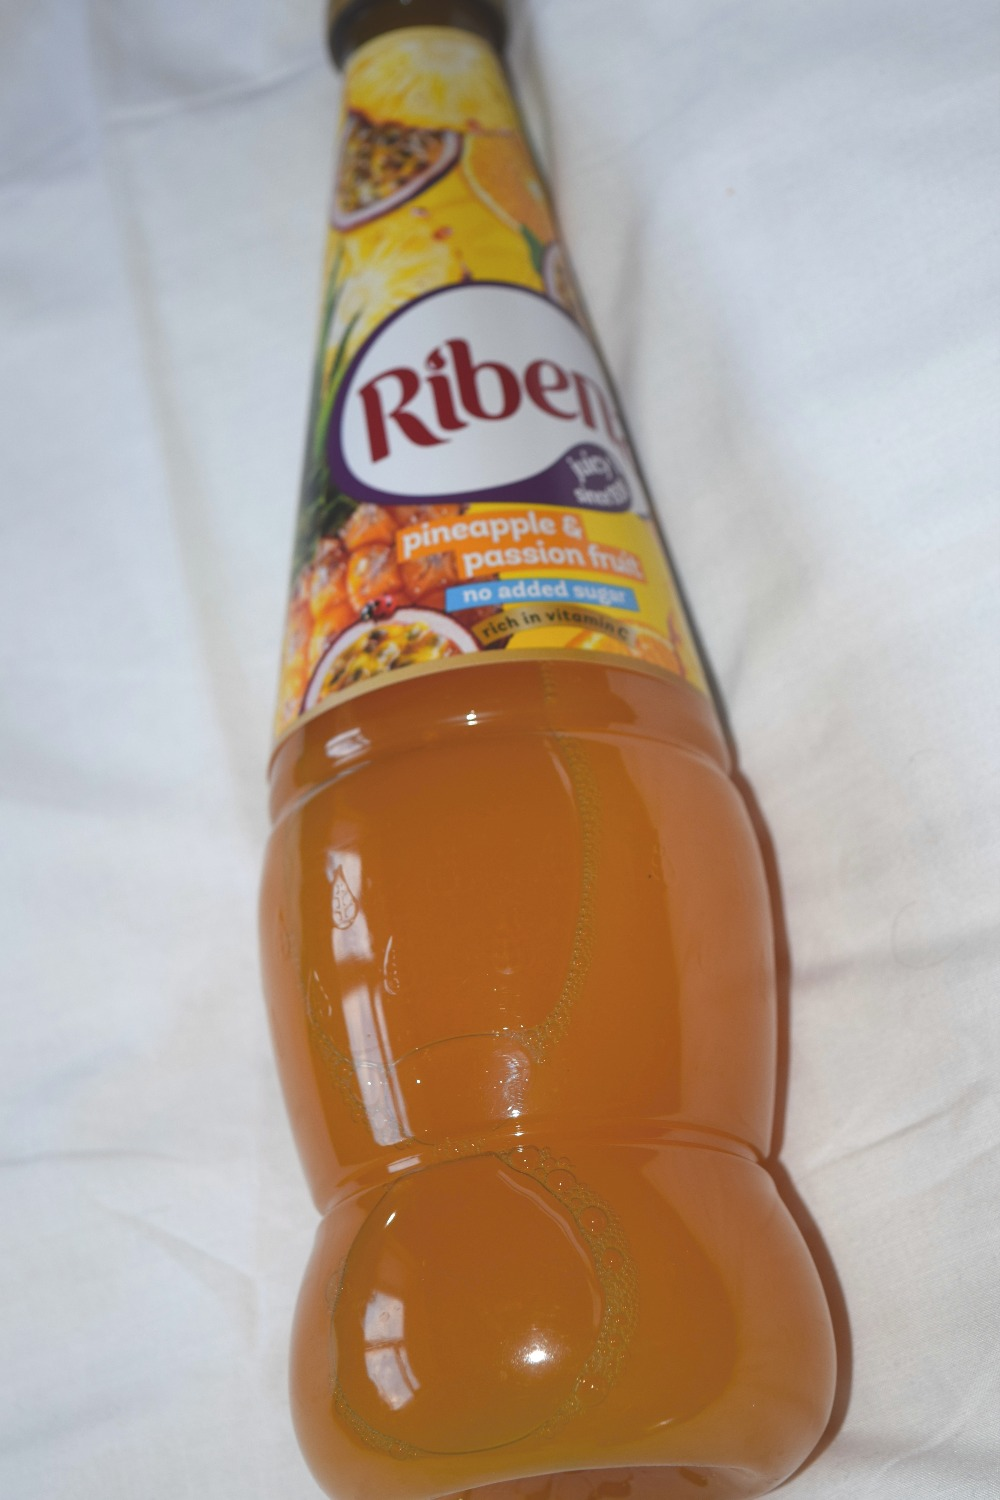 Ribena Pineapple and Passionfruit drink